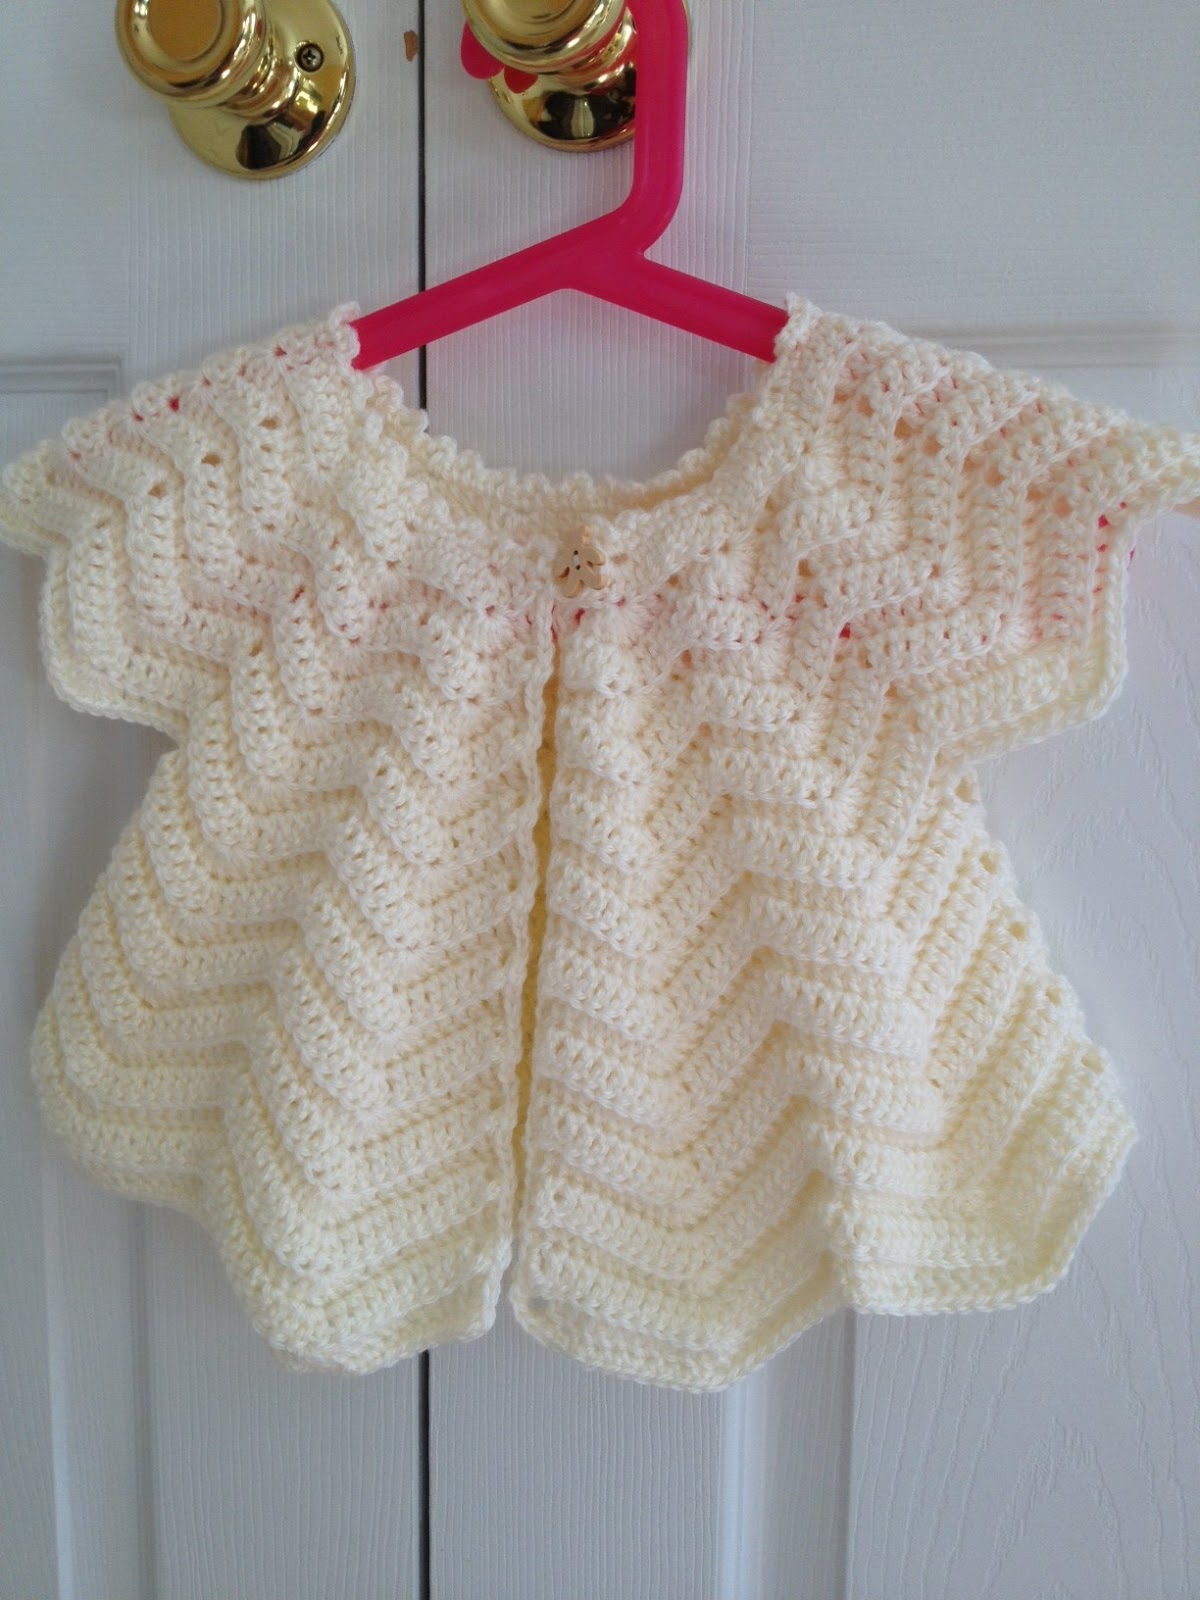 Free Crochet Pattern For A Baby Sweater : Agnes Gurumi: Emmys Baby Cardigan (Free Pattern)